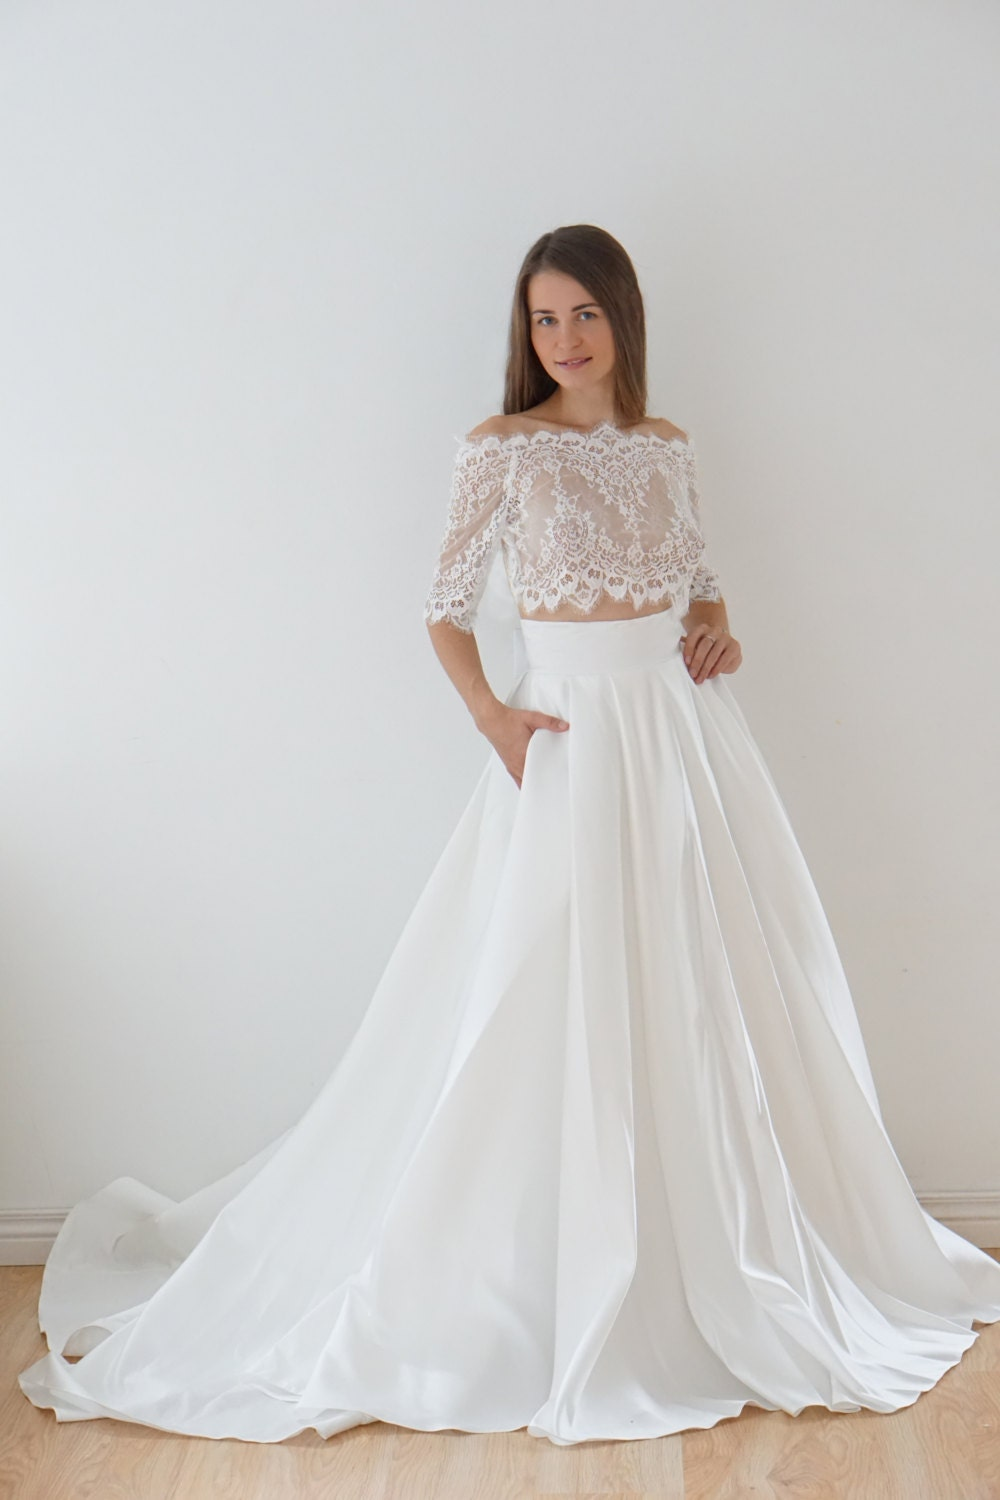 Crop top wedding dress satin wedding dress lace top lace for Wedding dress skirt and top